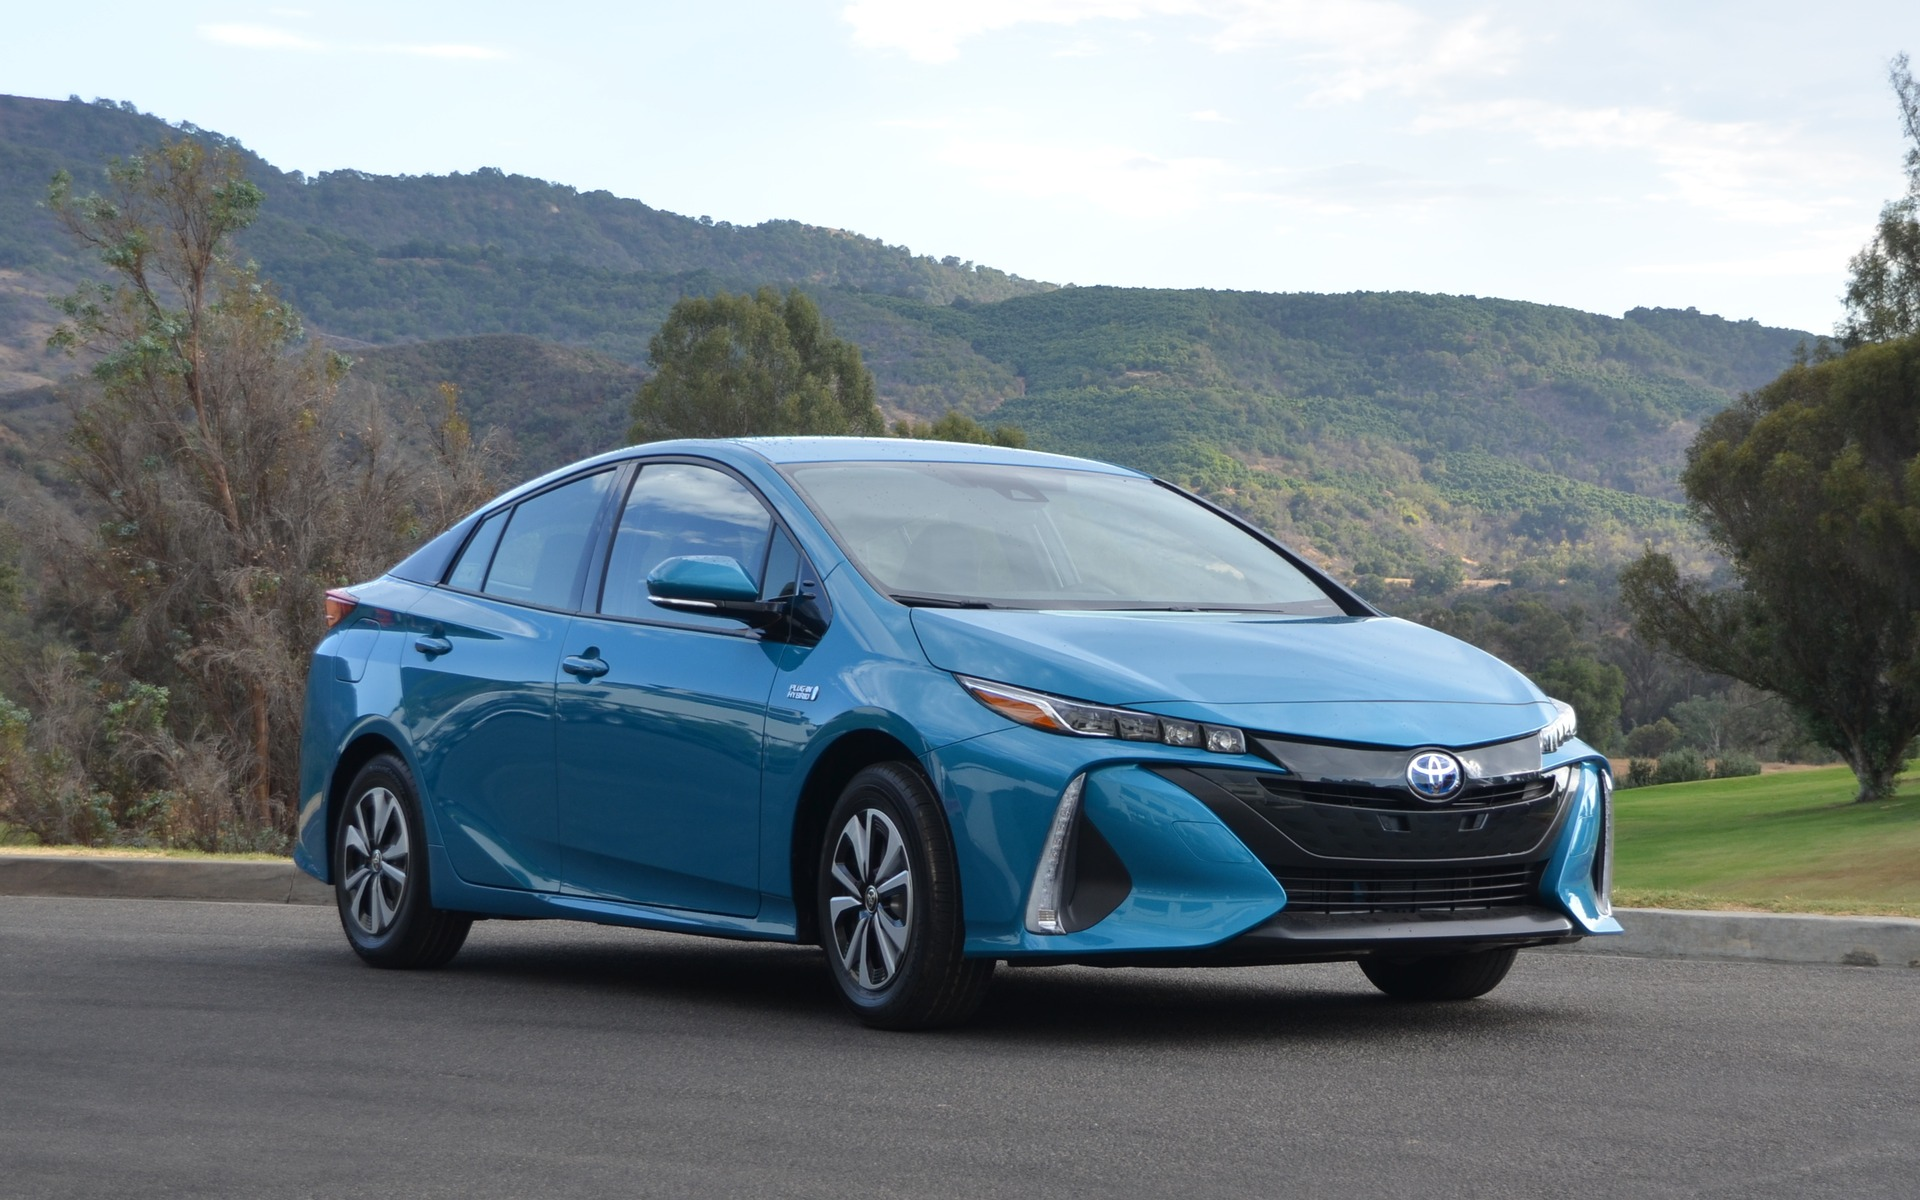 2017 toyota prius prime pricing announced the car guide. Black Bedroom Furniture Sets. Home Design Ideas